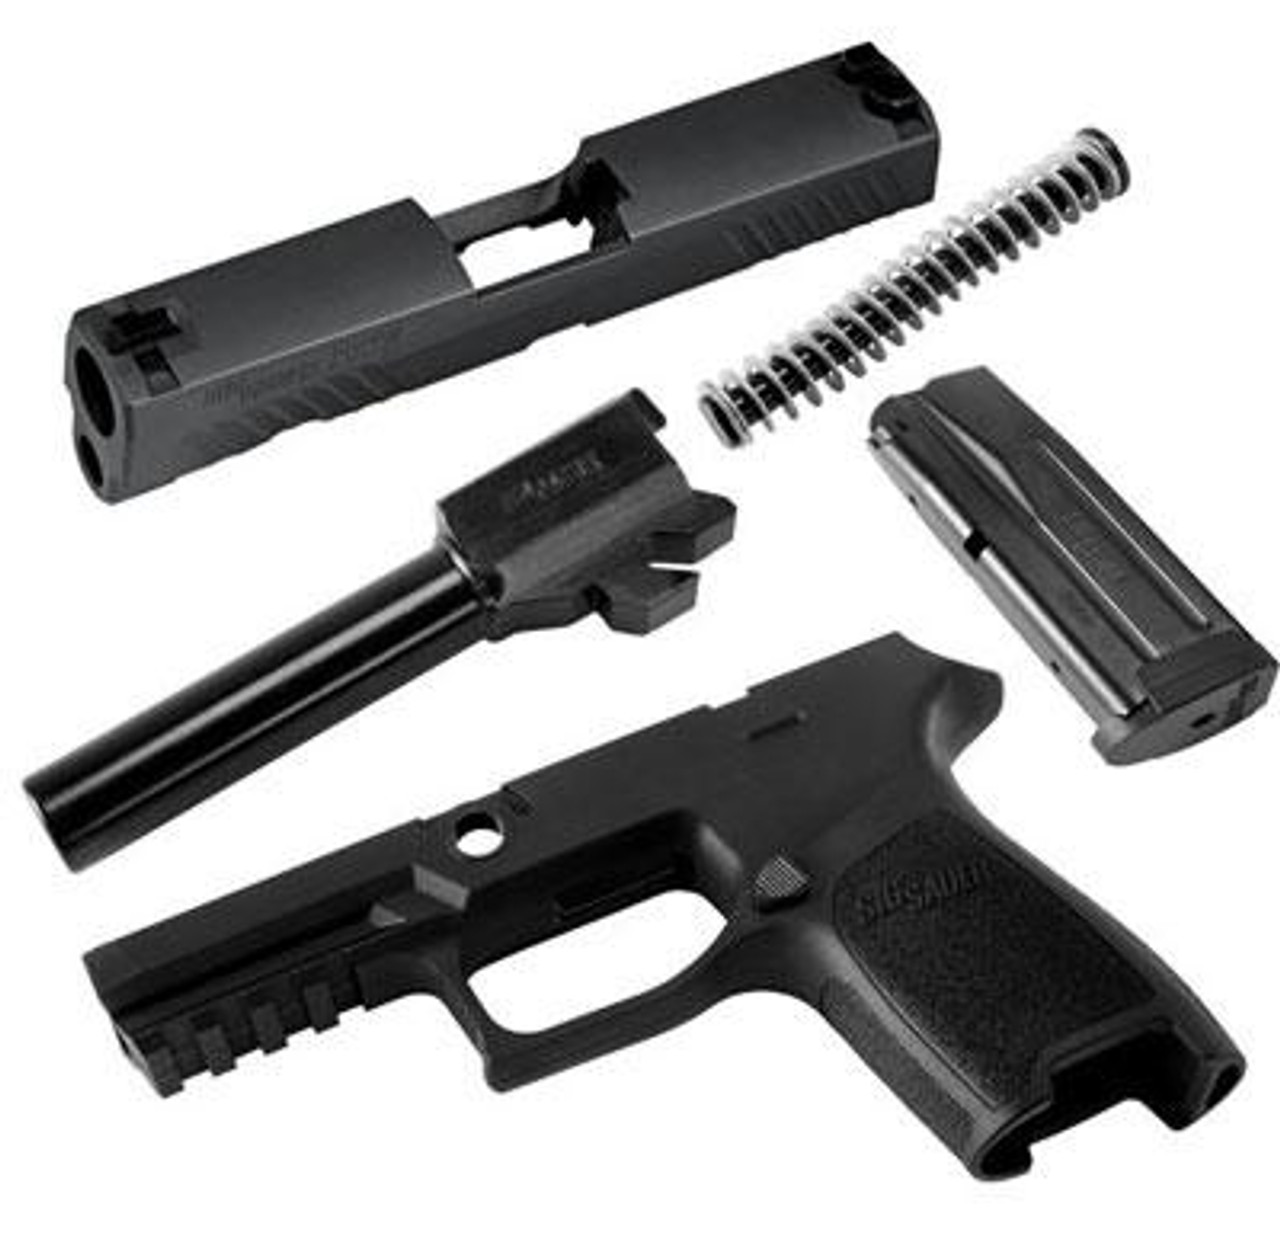 Sig Sauer P320 Caliber X Change Kit - Compact